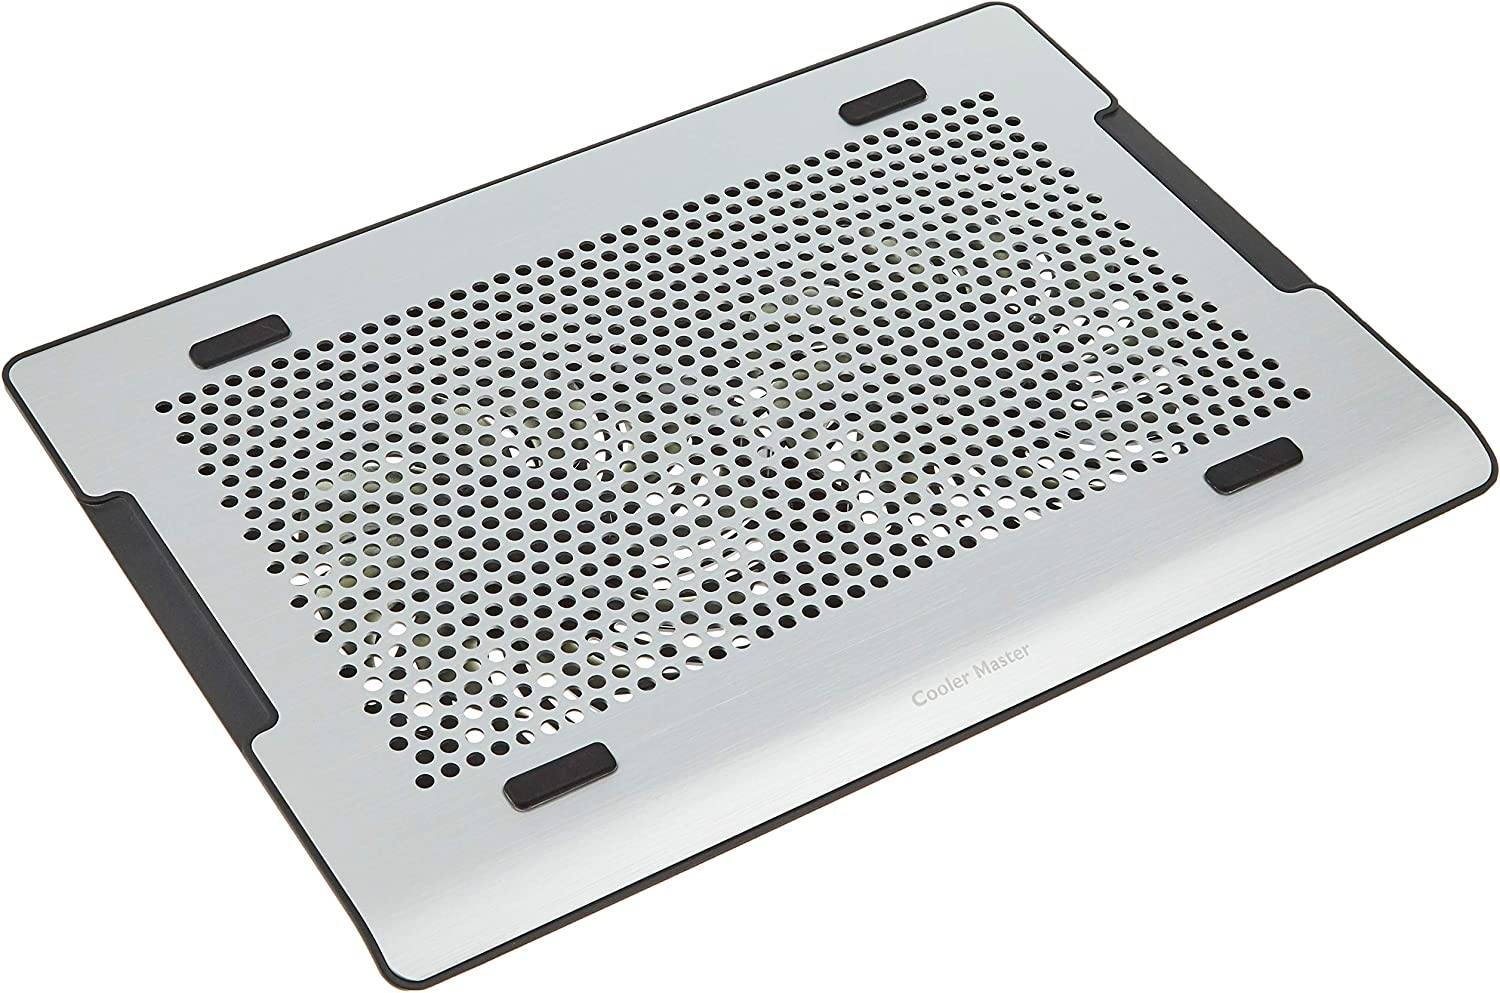 Cooler Master R9-NBC-A2HS-GP NotePal A200 - Ultra-Slim Laptop Cooling Pad with Dual 140mm Silent Fans